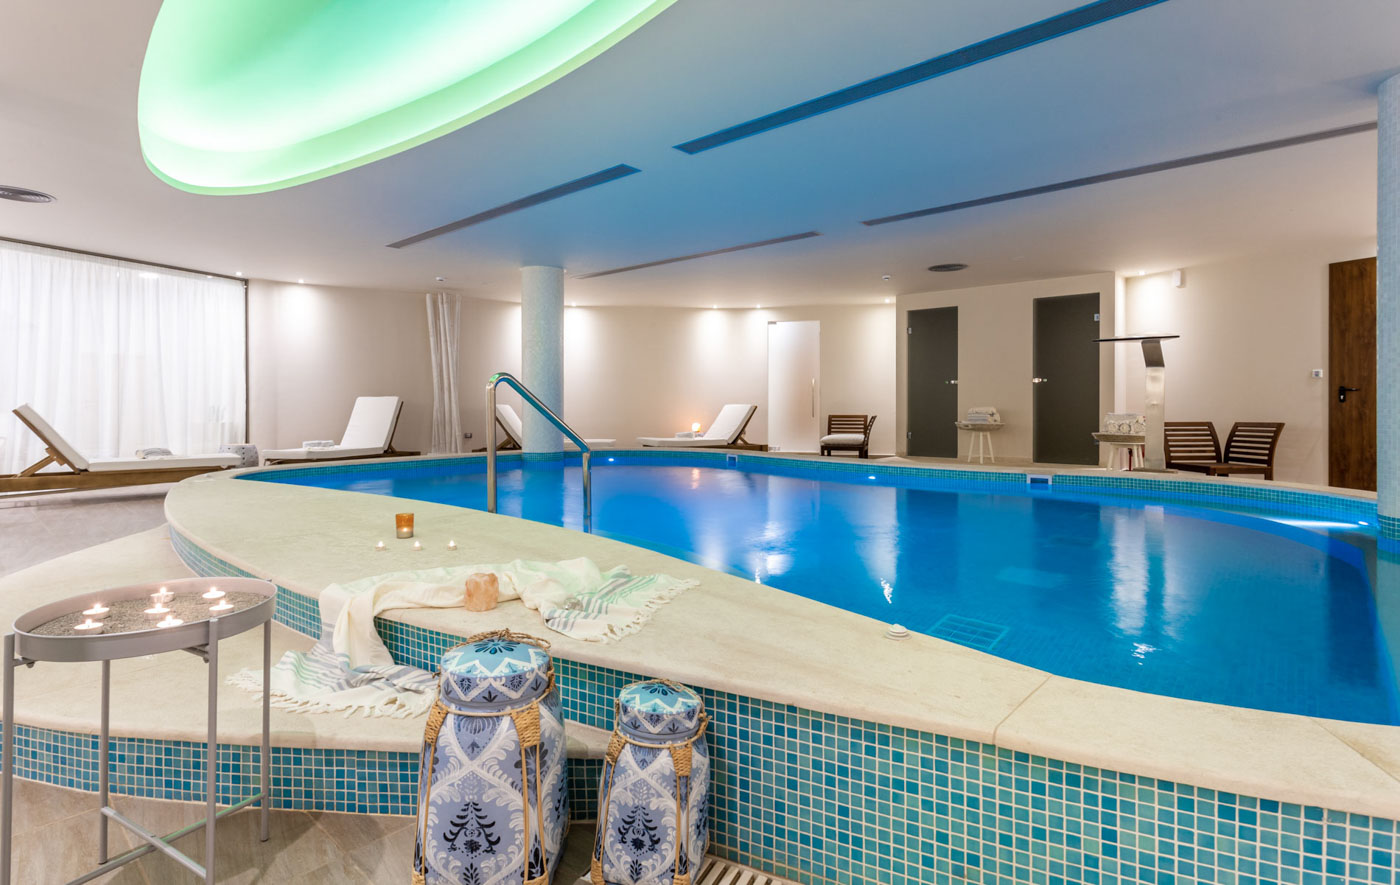 Elysian luxury hotel and spa Kalamata internal pool